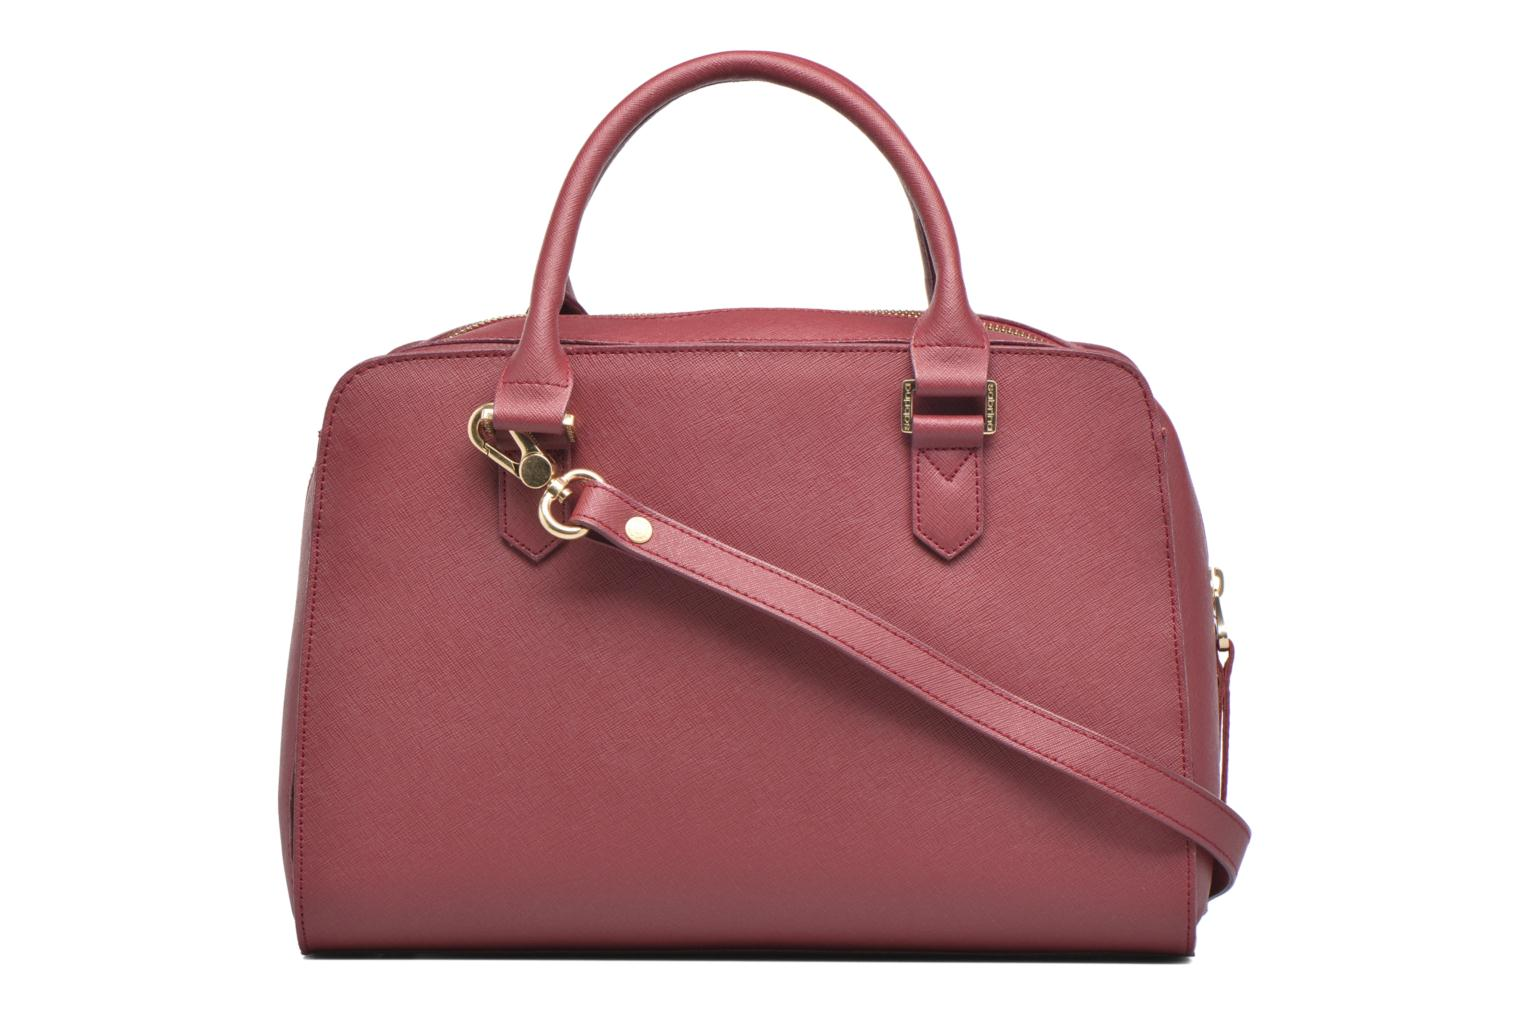 Carolina Saffiano Cranberry